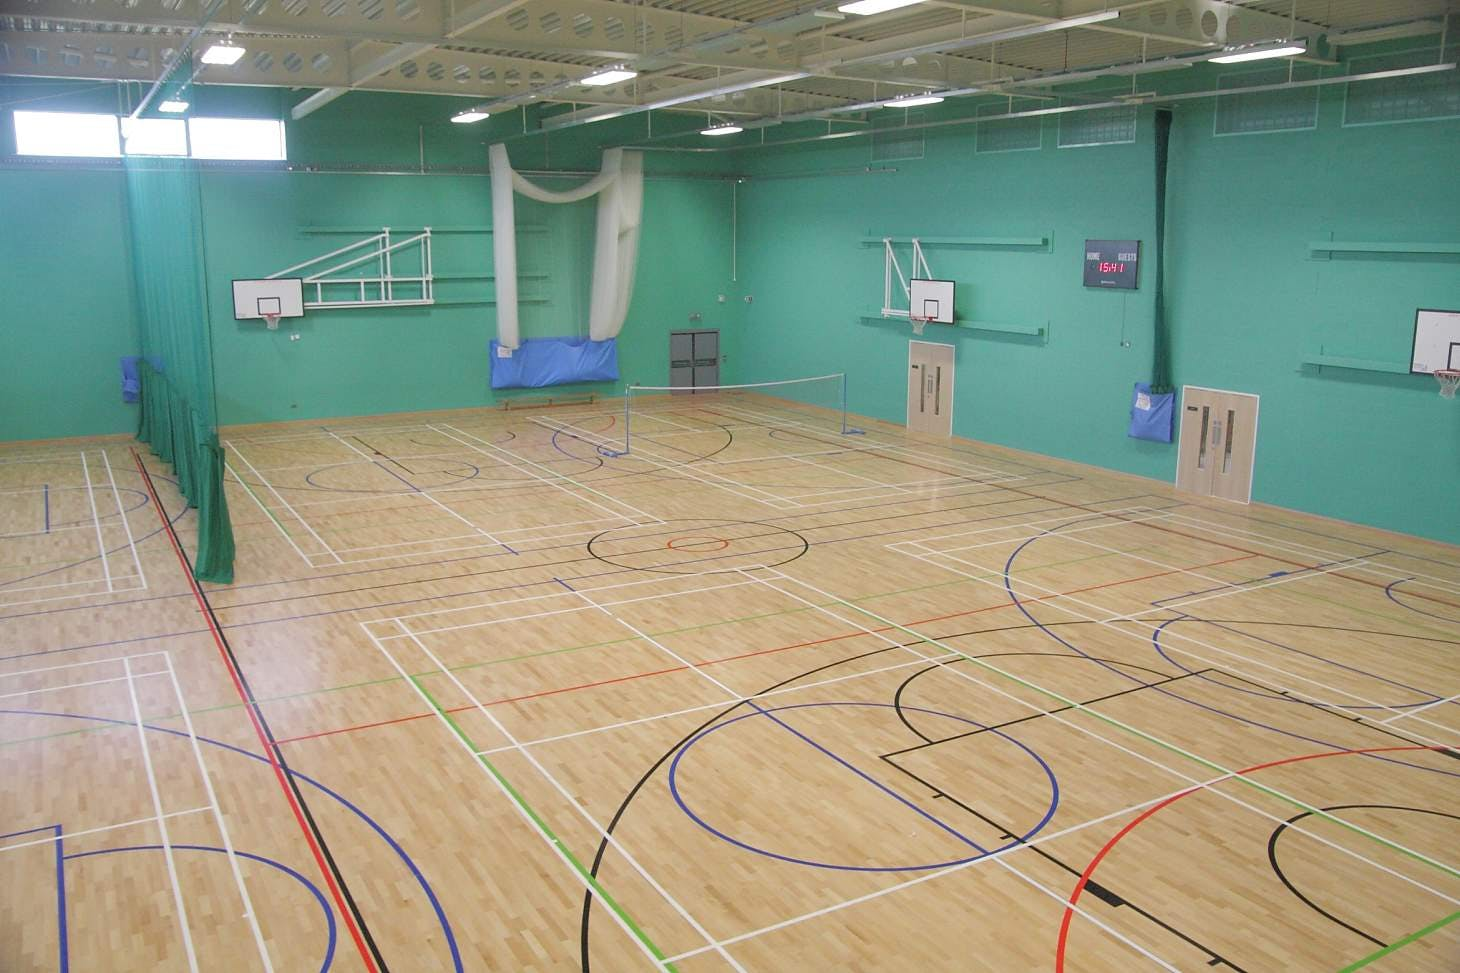 Wellsway Sports Centre Court | Sports hall volleyball court